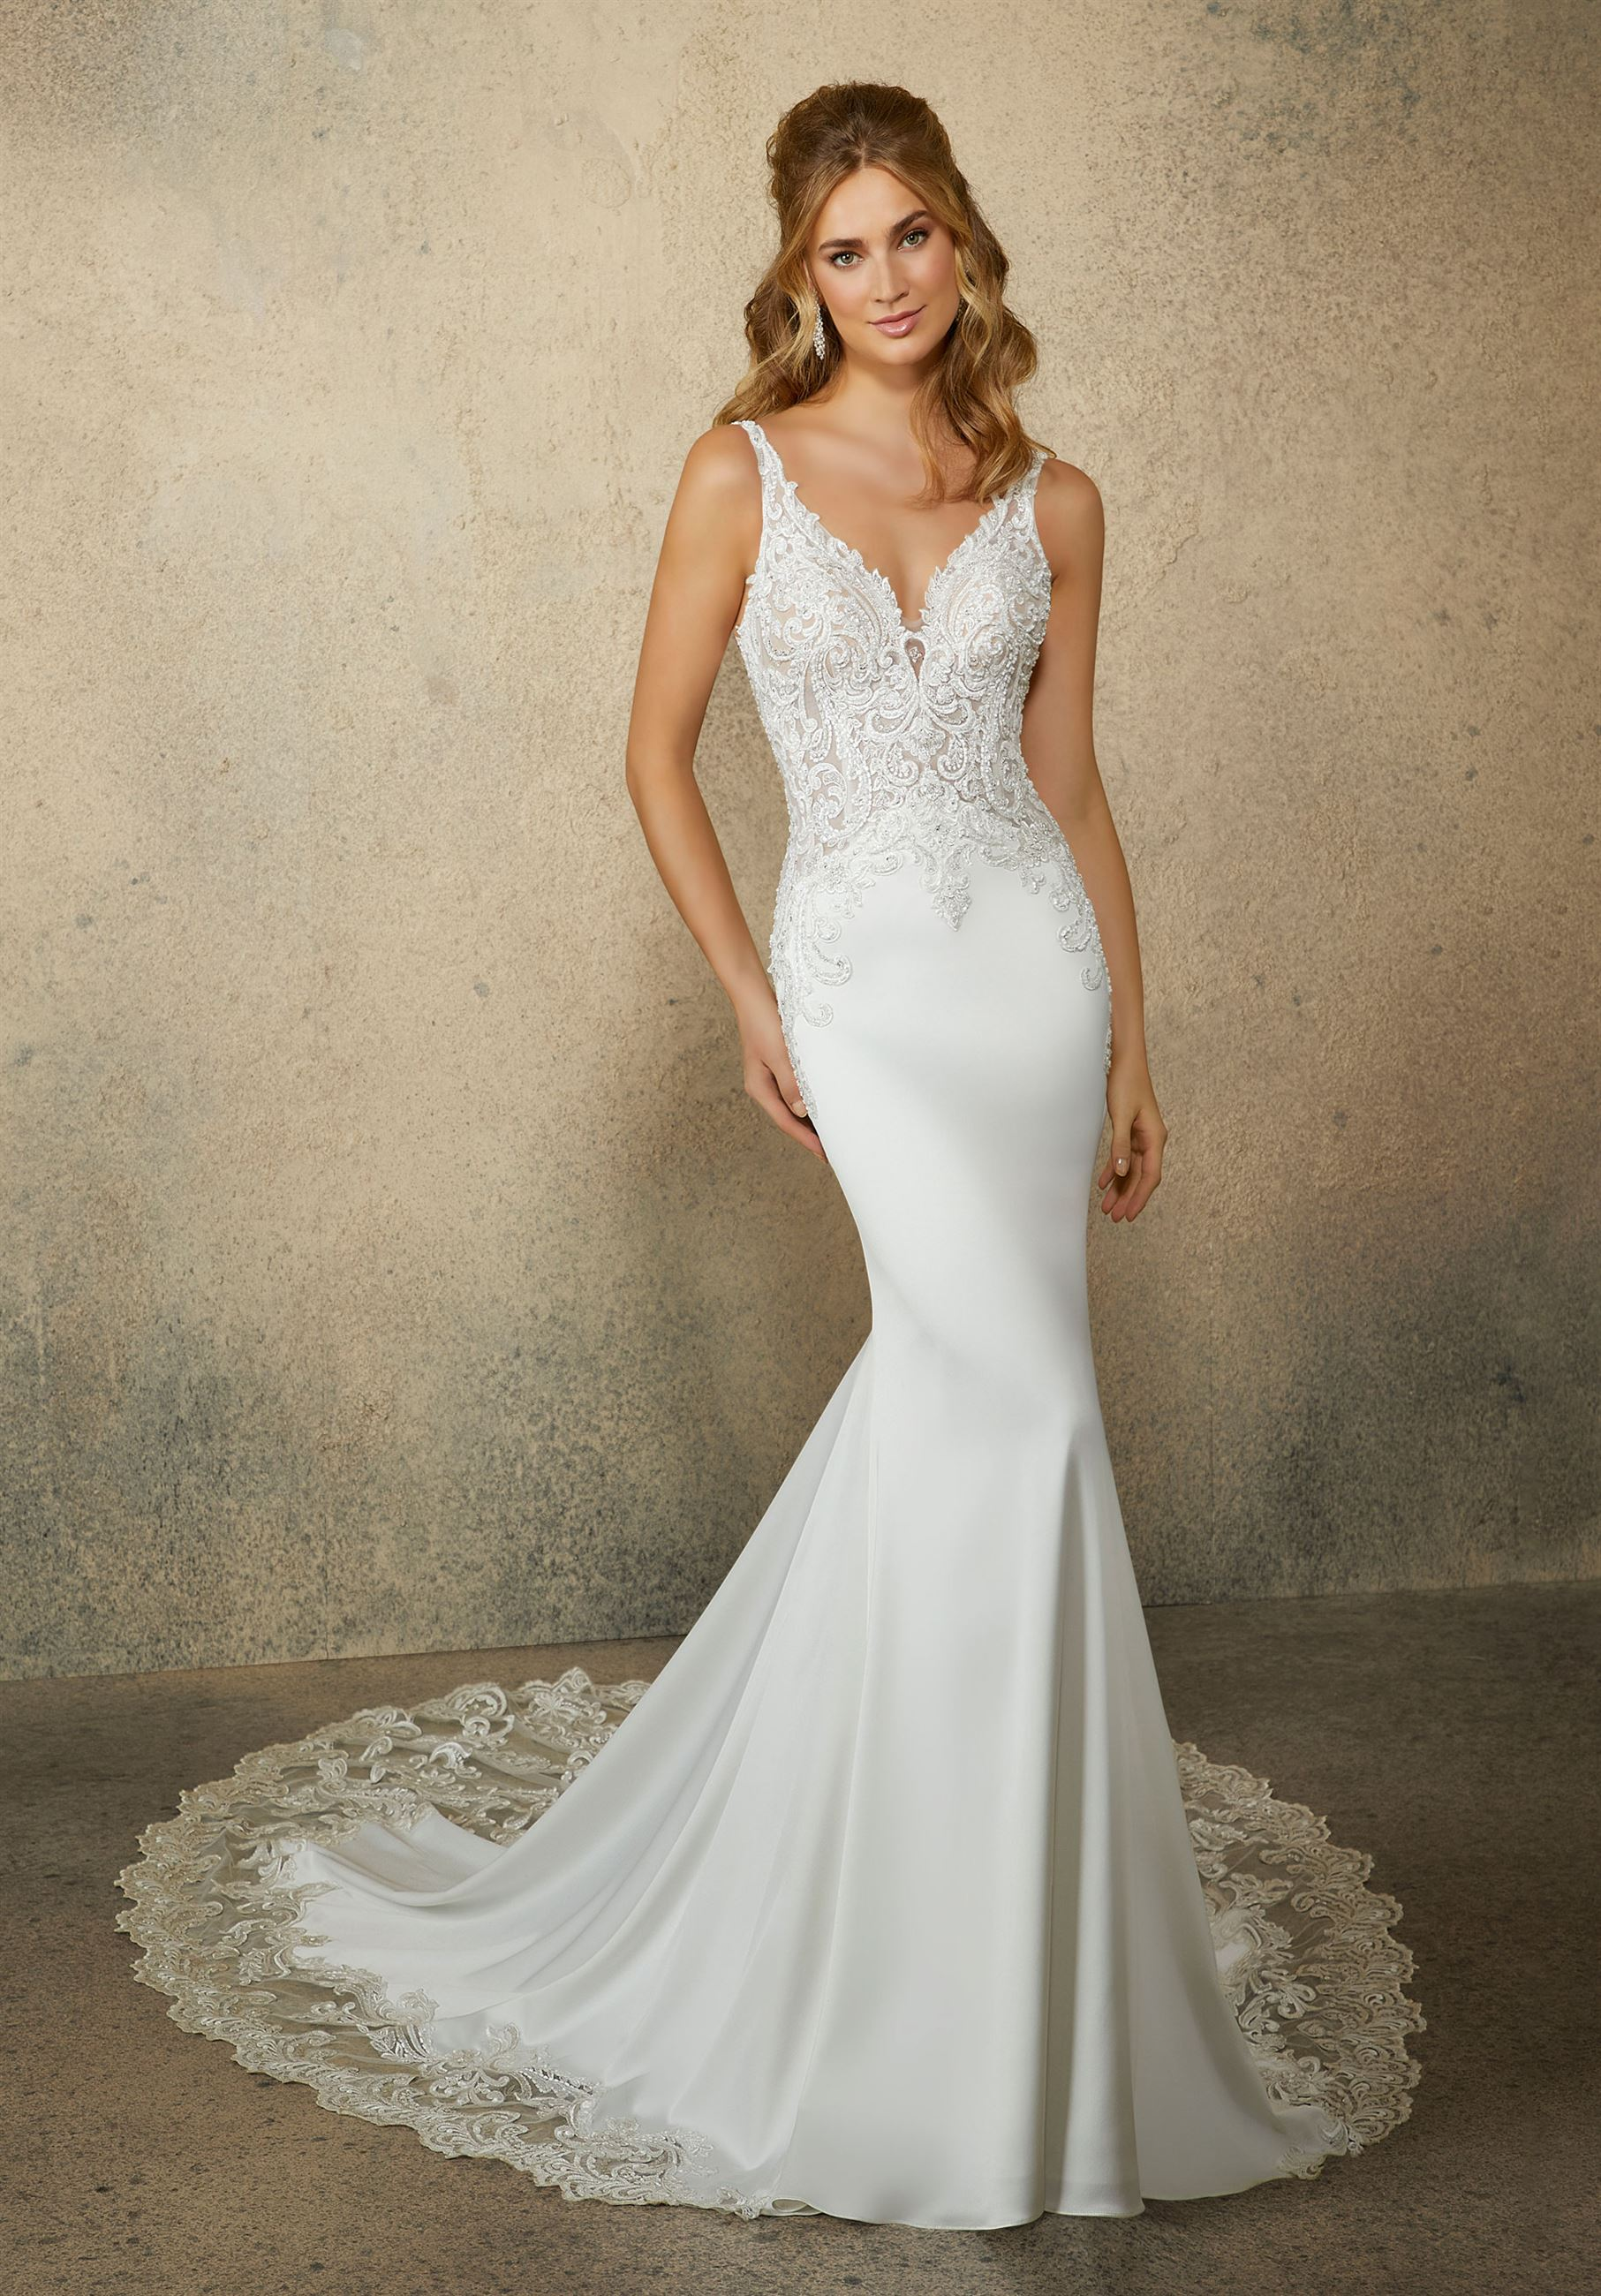 Bromley Brides Wedding Dresses In Bromley Uk With Prom Bridesmaid Evening Dresses,Black Dresses For A Wedding Guest